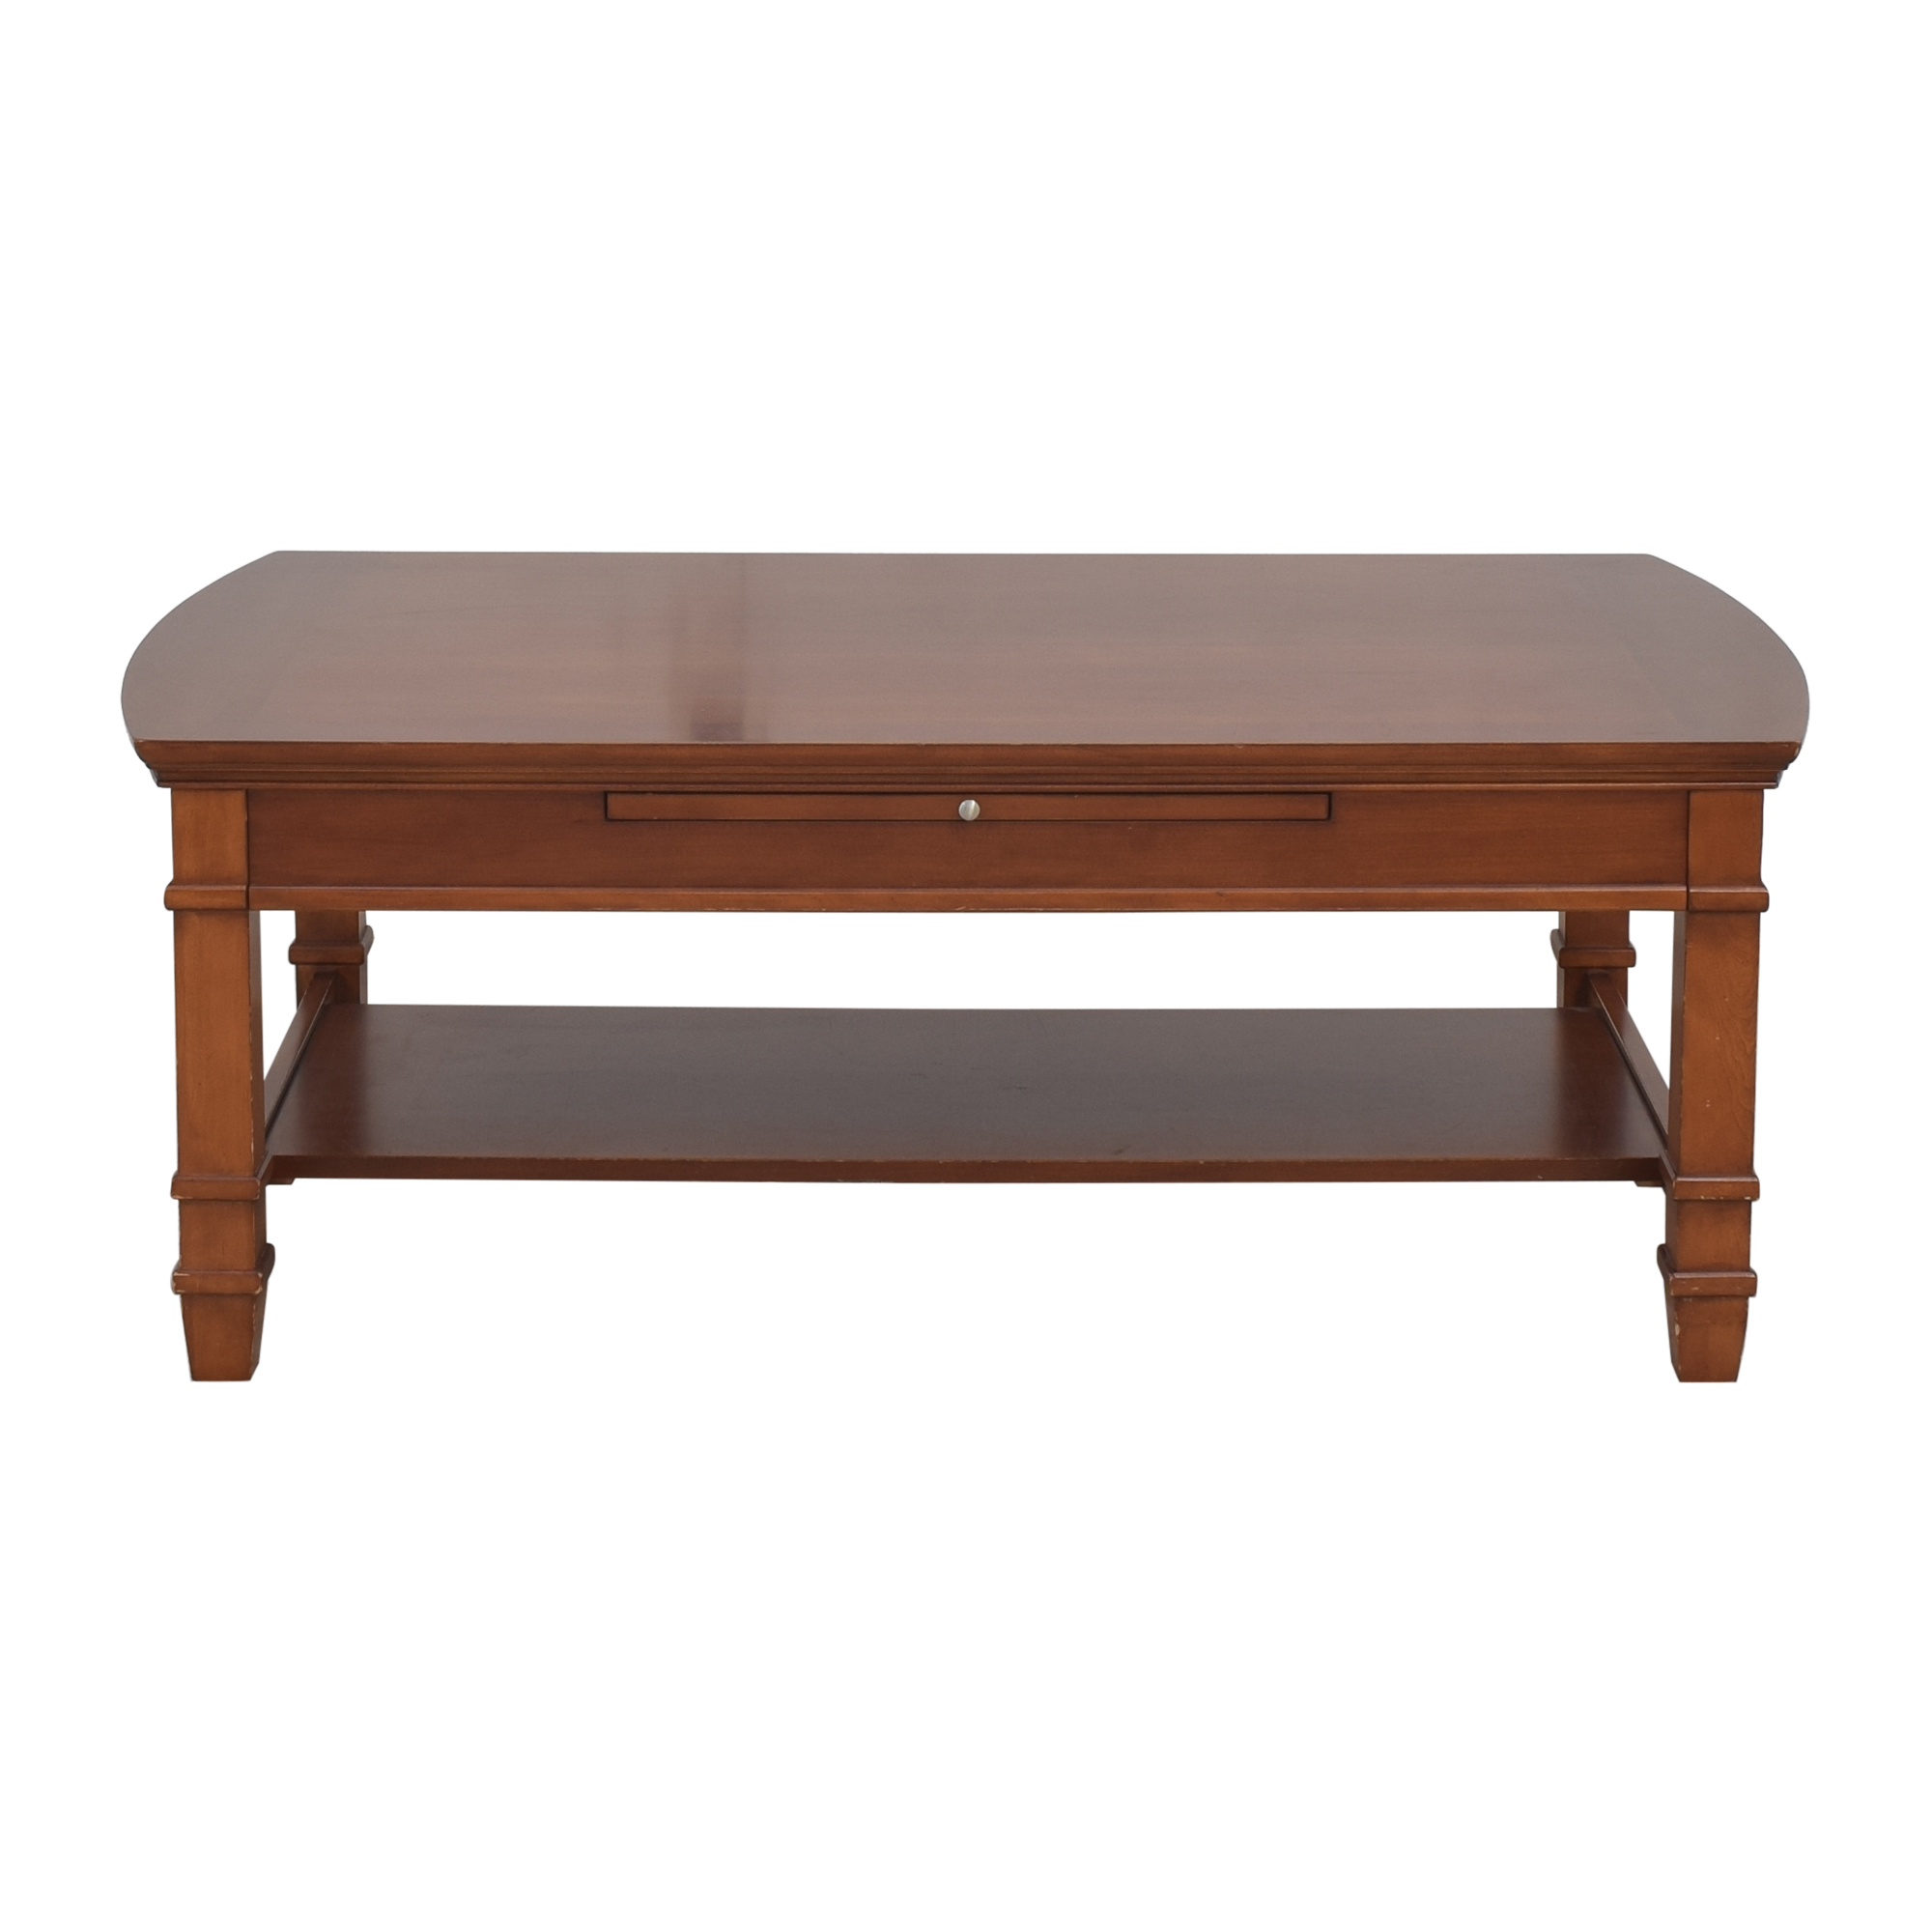 Thomasville Bridges 2.0 Rectangular Coffee Table with Extension / Tables